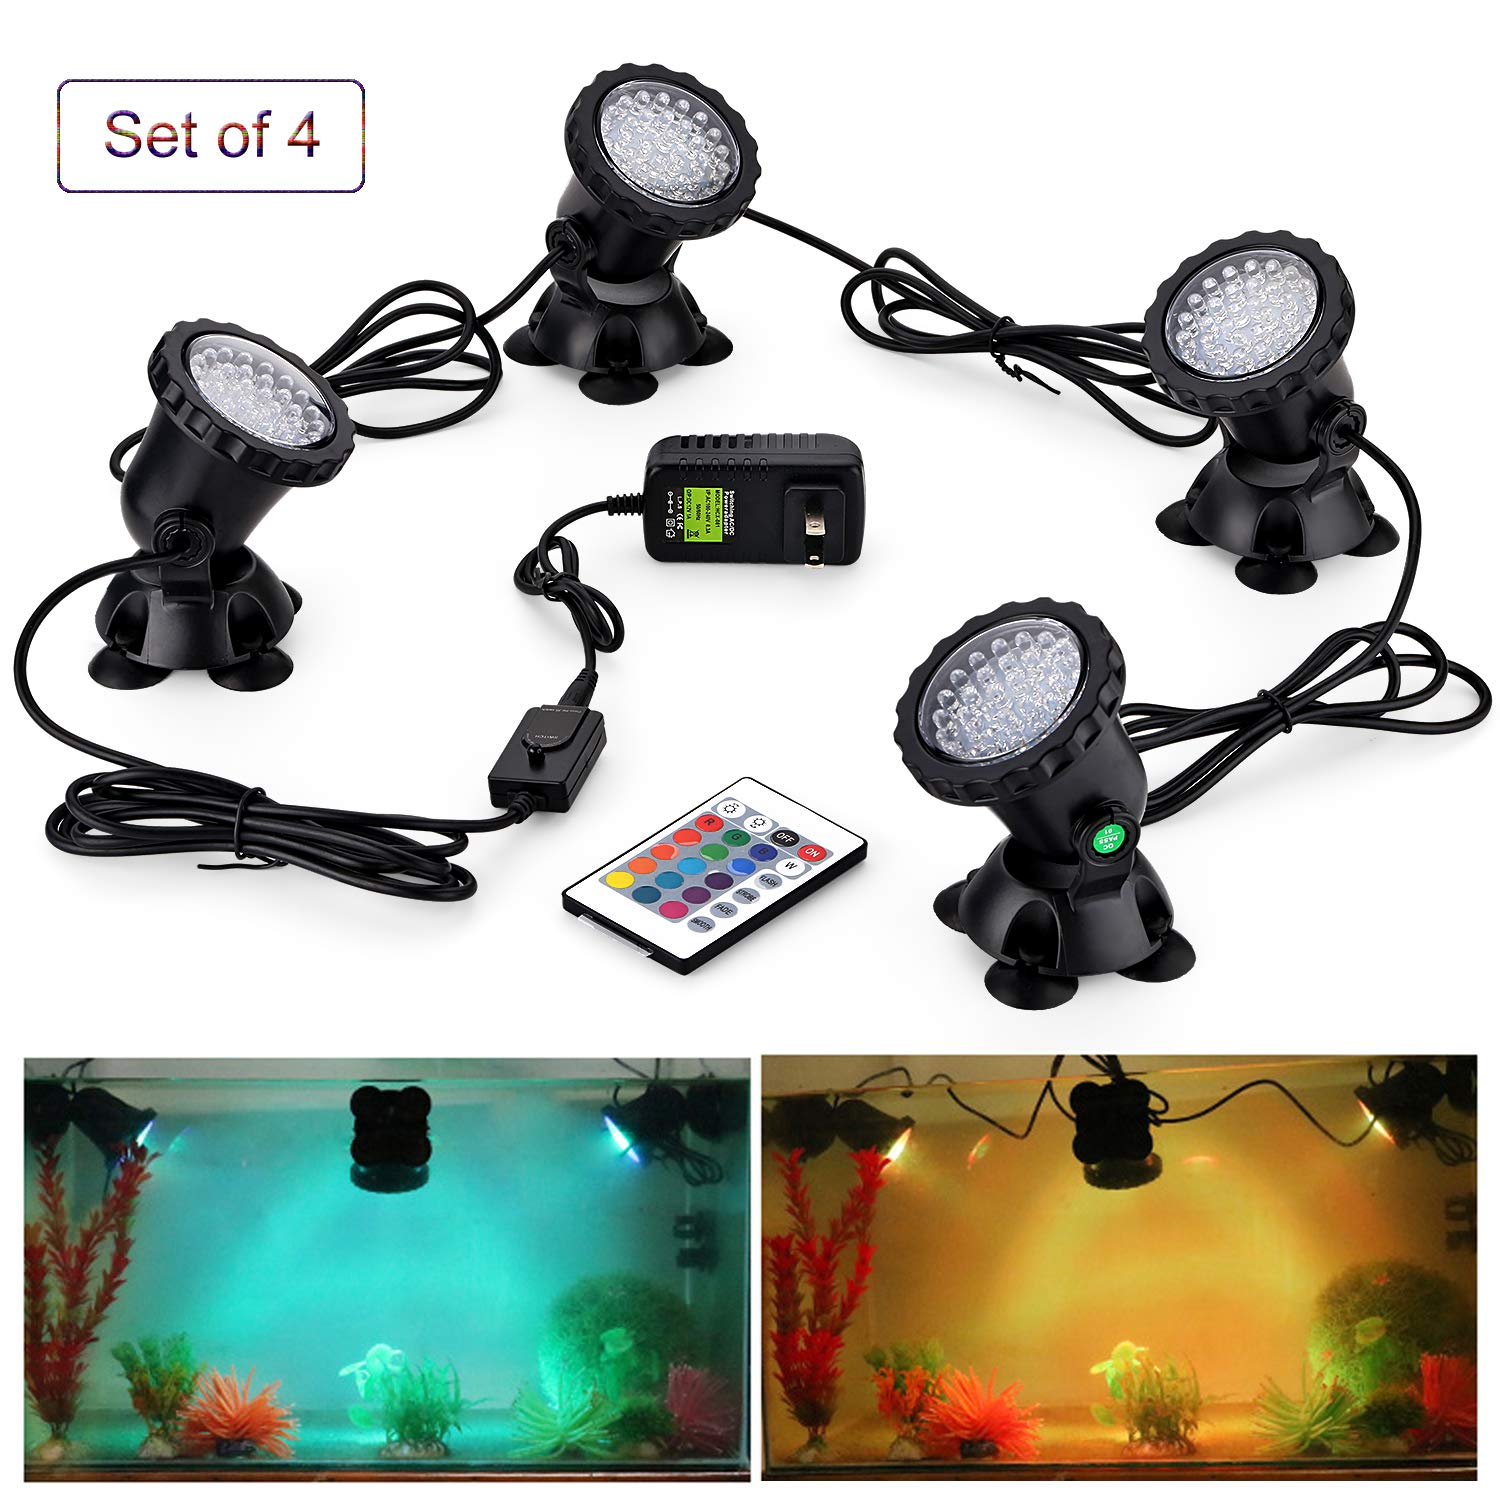 CPROSP Remote Control Pond Lights 8W Submersible Lamp IP68 Waterproof Underwater Aquarium Spotlight 36-LED Multicolor Decoration Landscape Lamp for Swimming Pool Fish Tank Fountain (Set of 4) by CPROSP